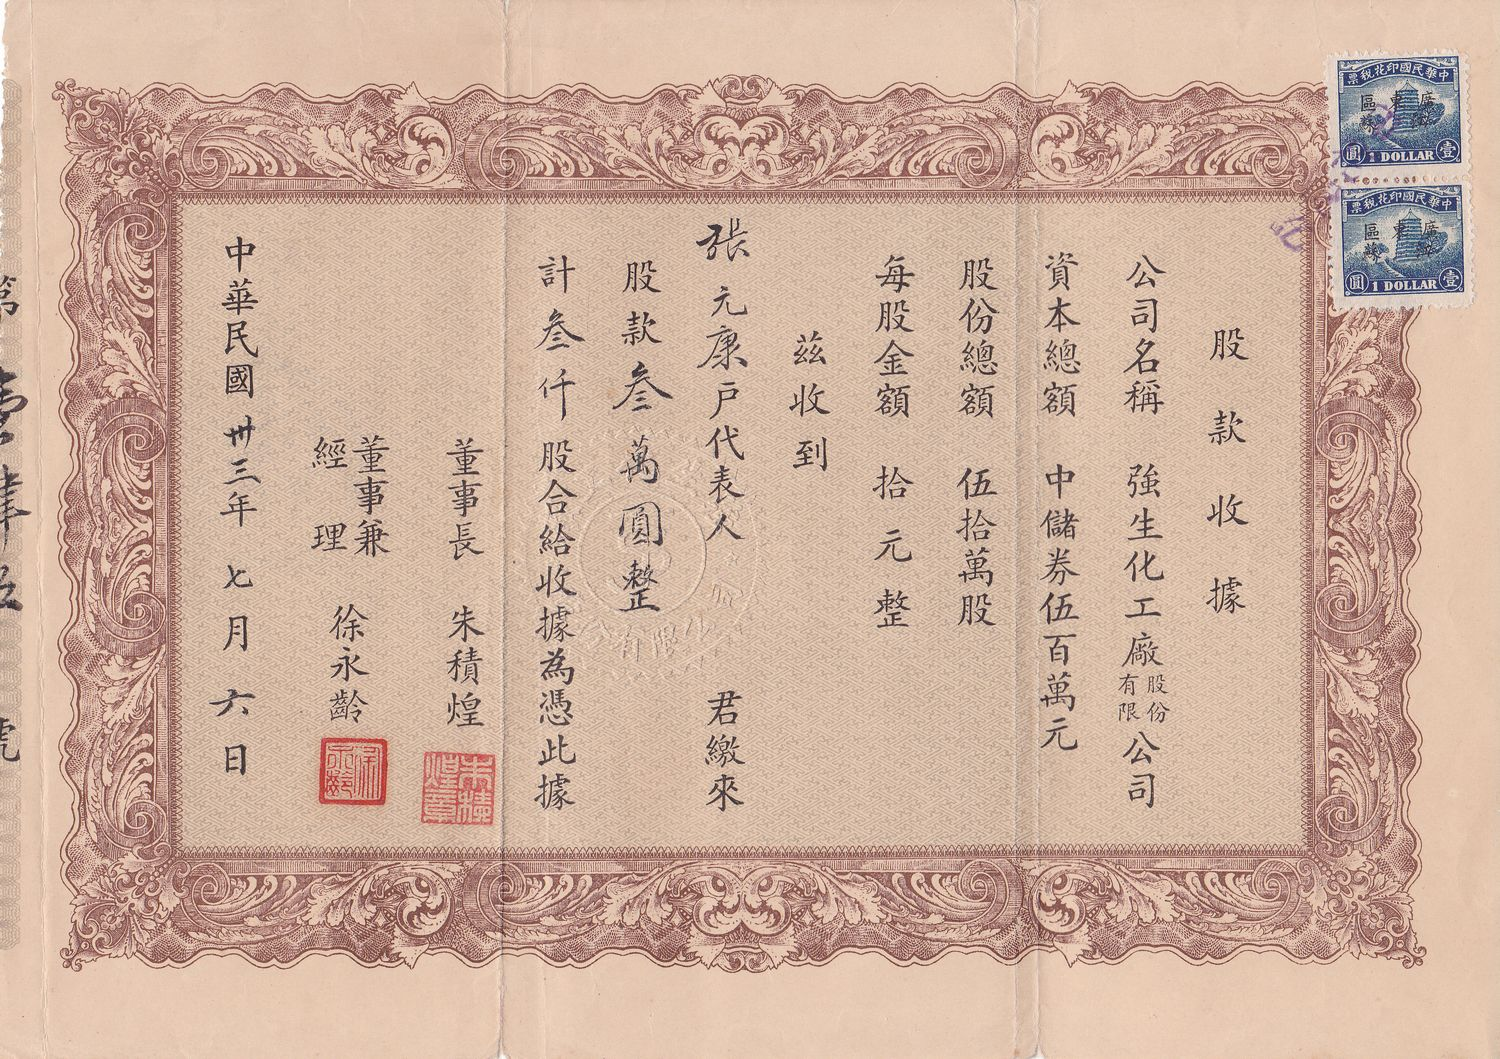 S1294, Shanghai Watson Chemical Co., Stock Certificate of 3000 Shares, 1944